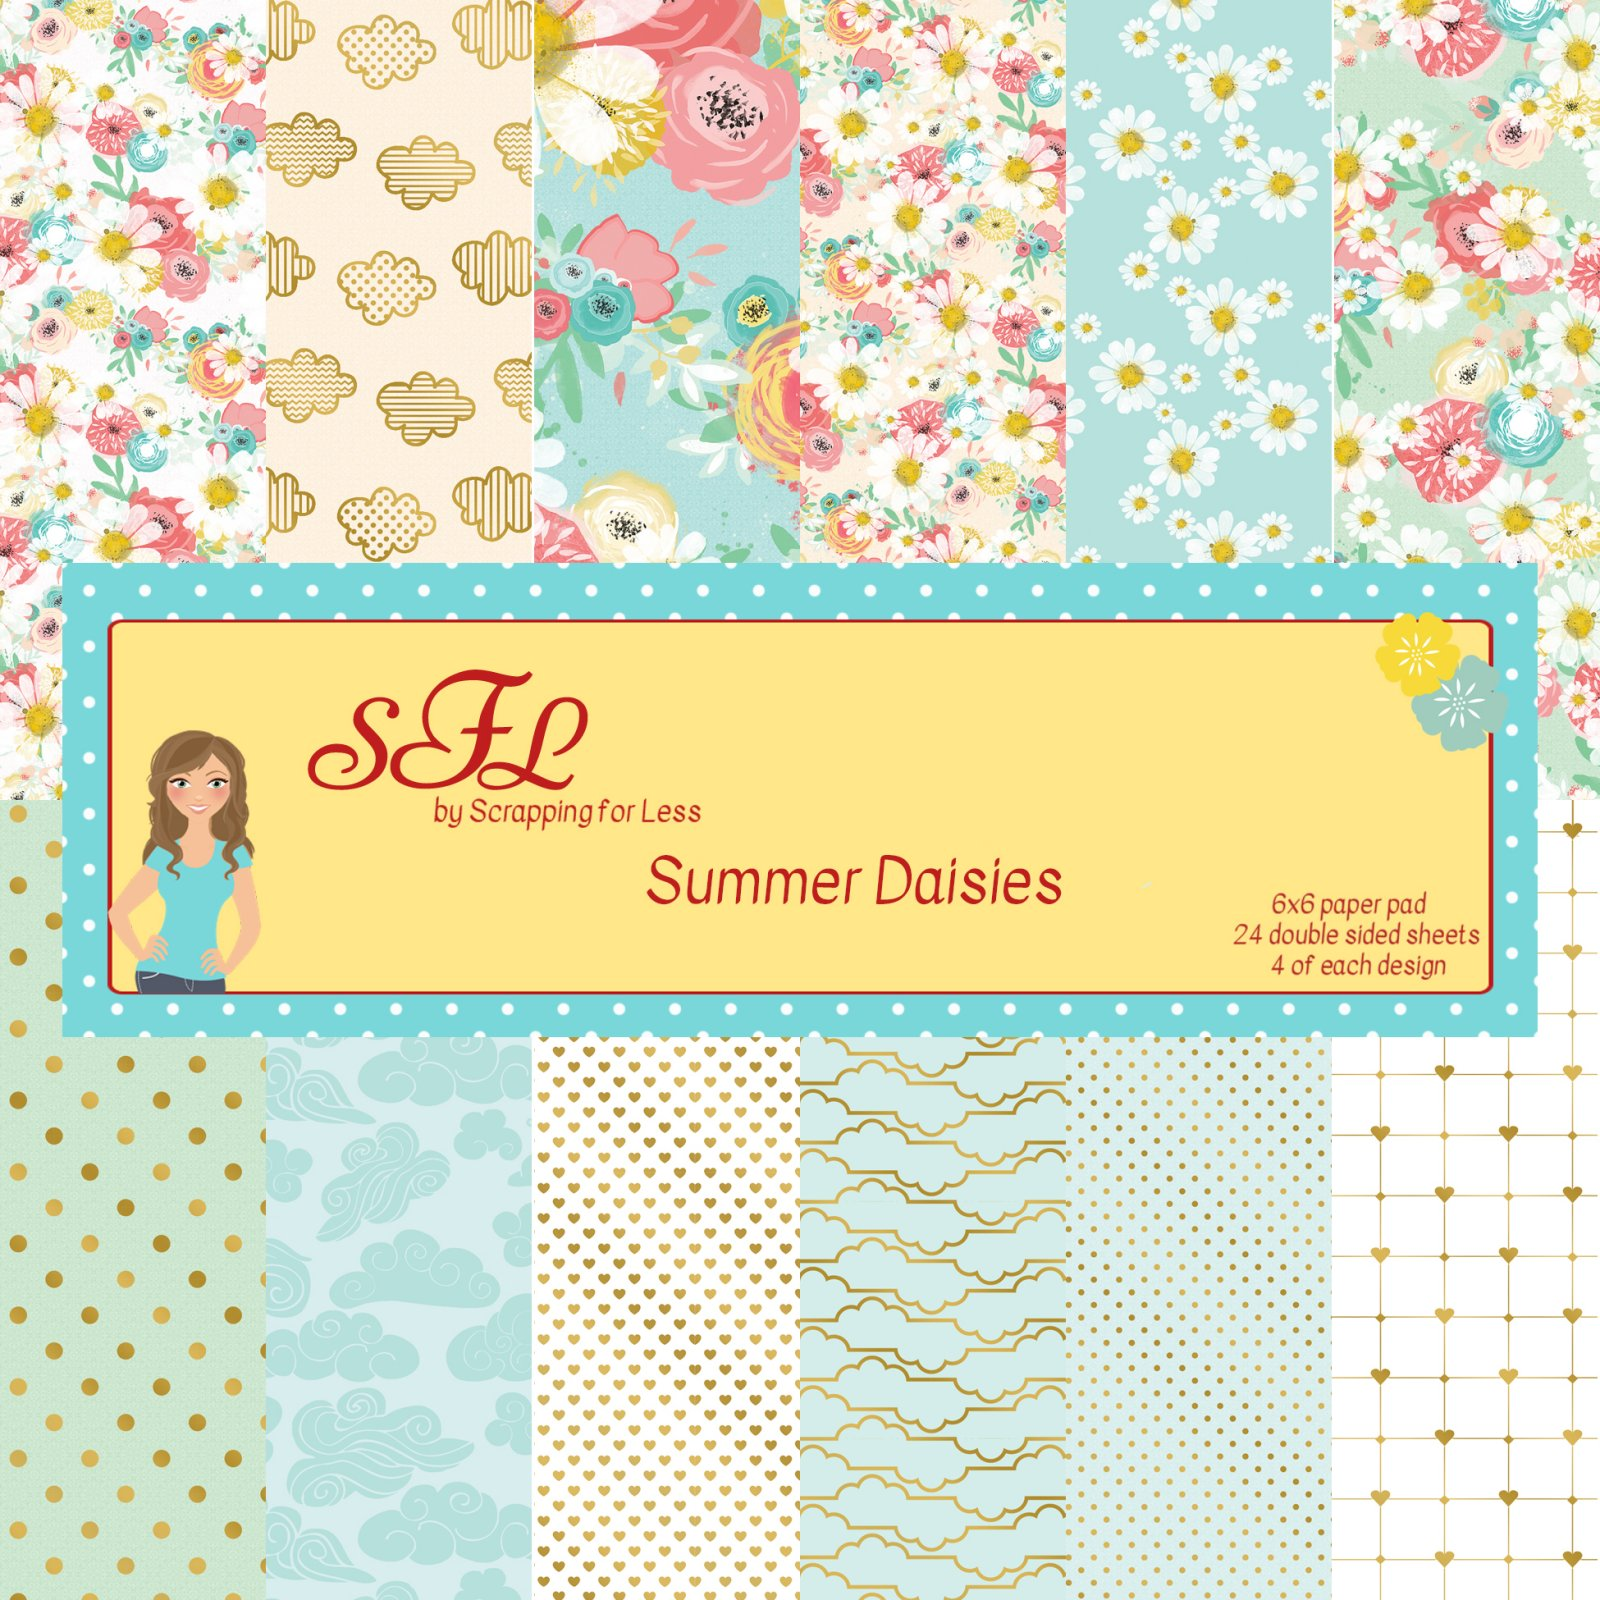 Scrapping for Less Summer Daisies 6x6 Paper Pad